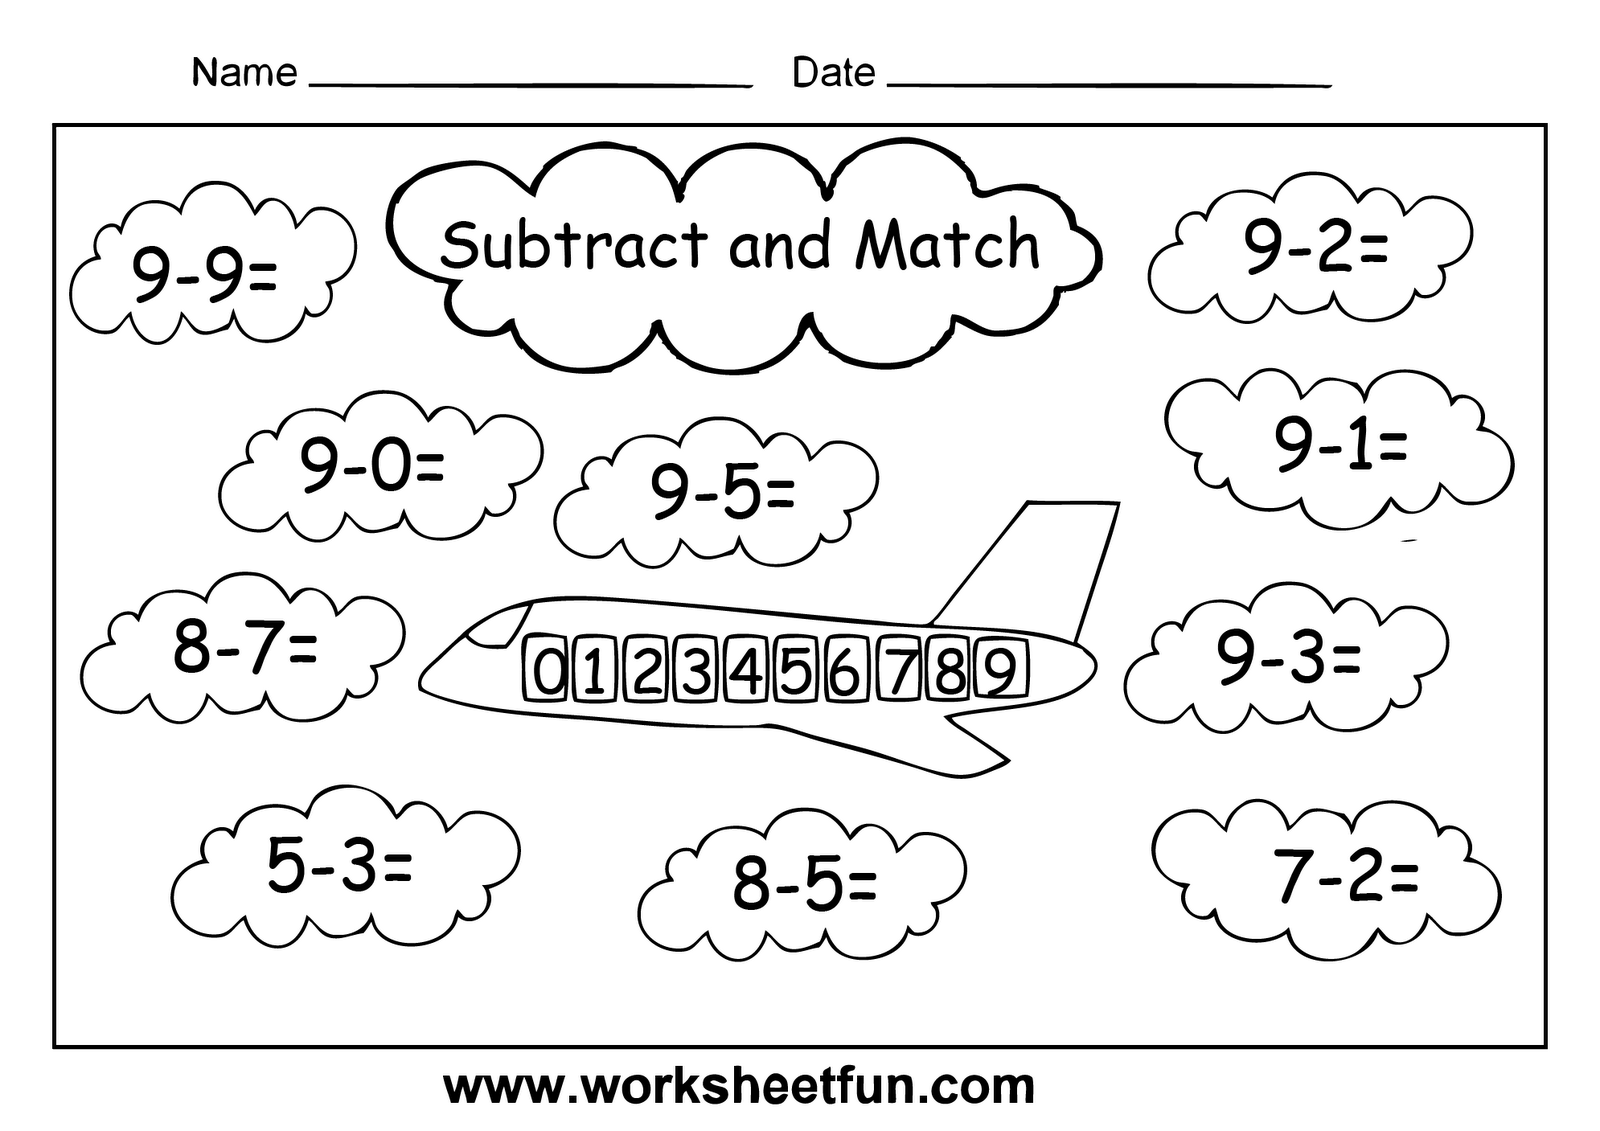 math worksheet : 1000 images about education on pinterest  halloween math  : Subtraction Worksheets Pdf